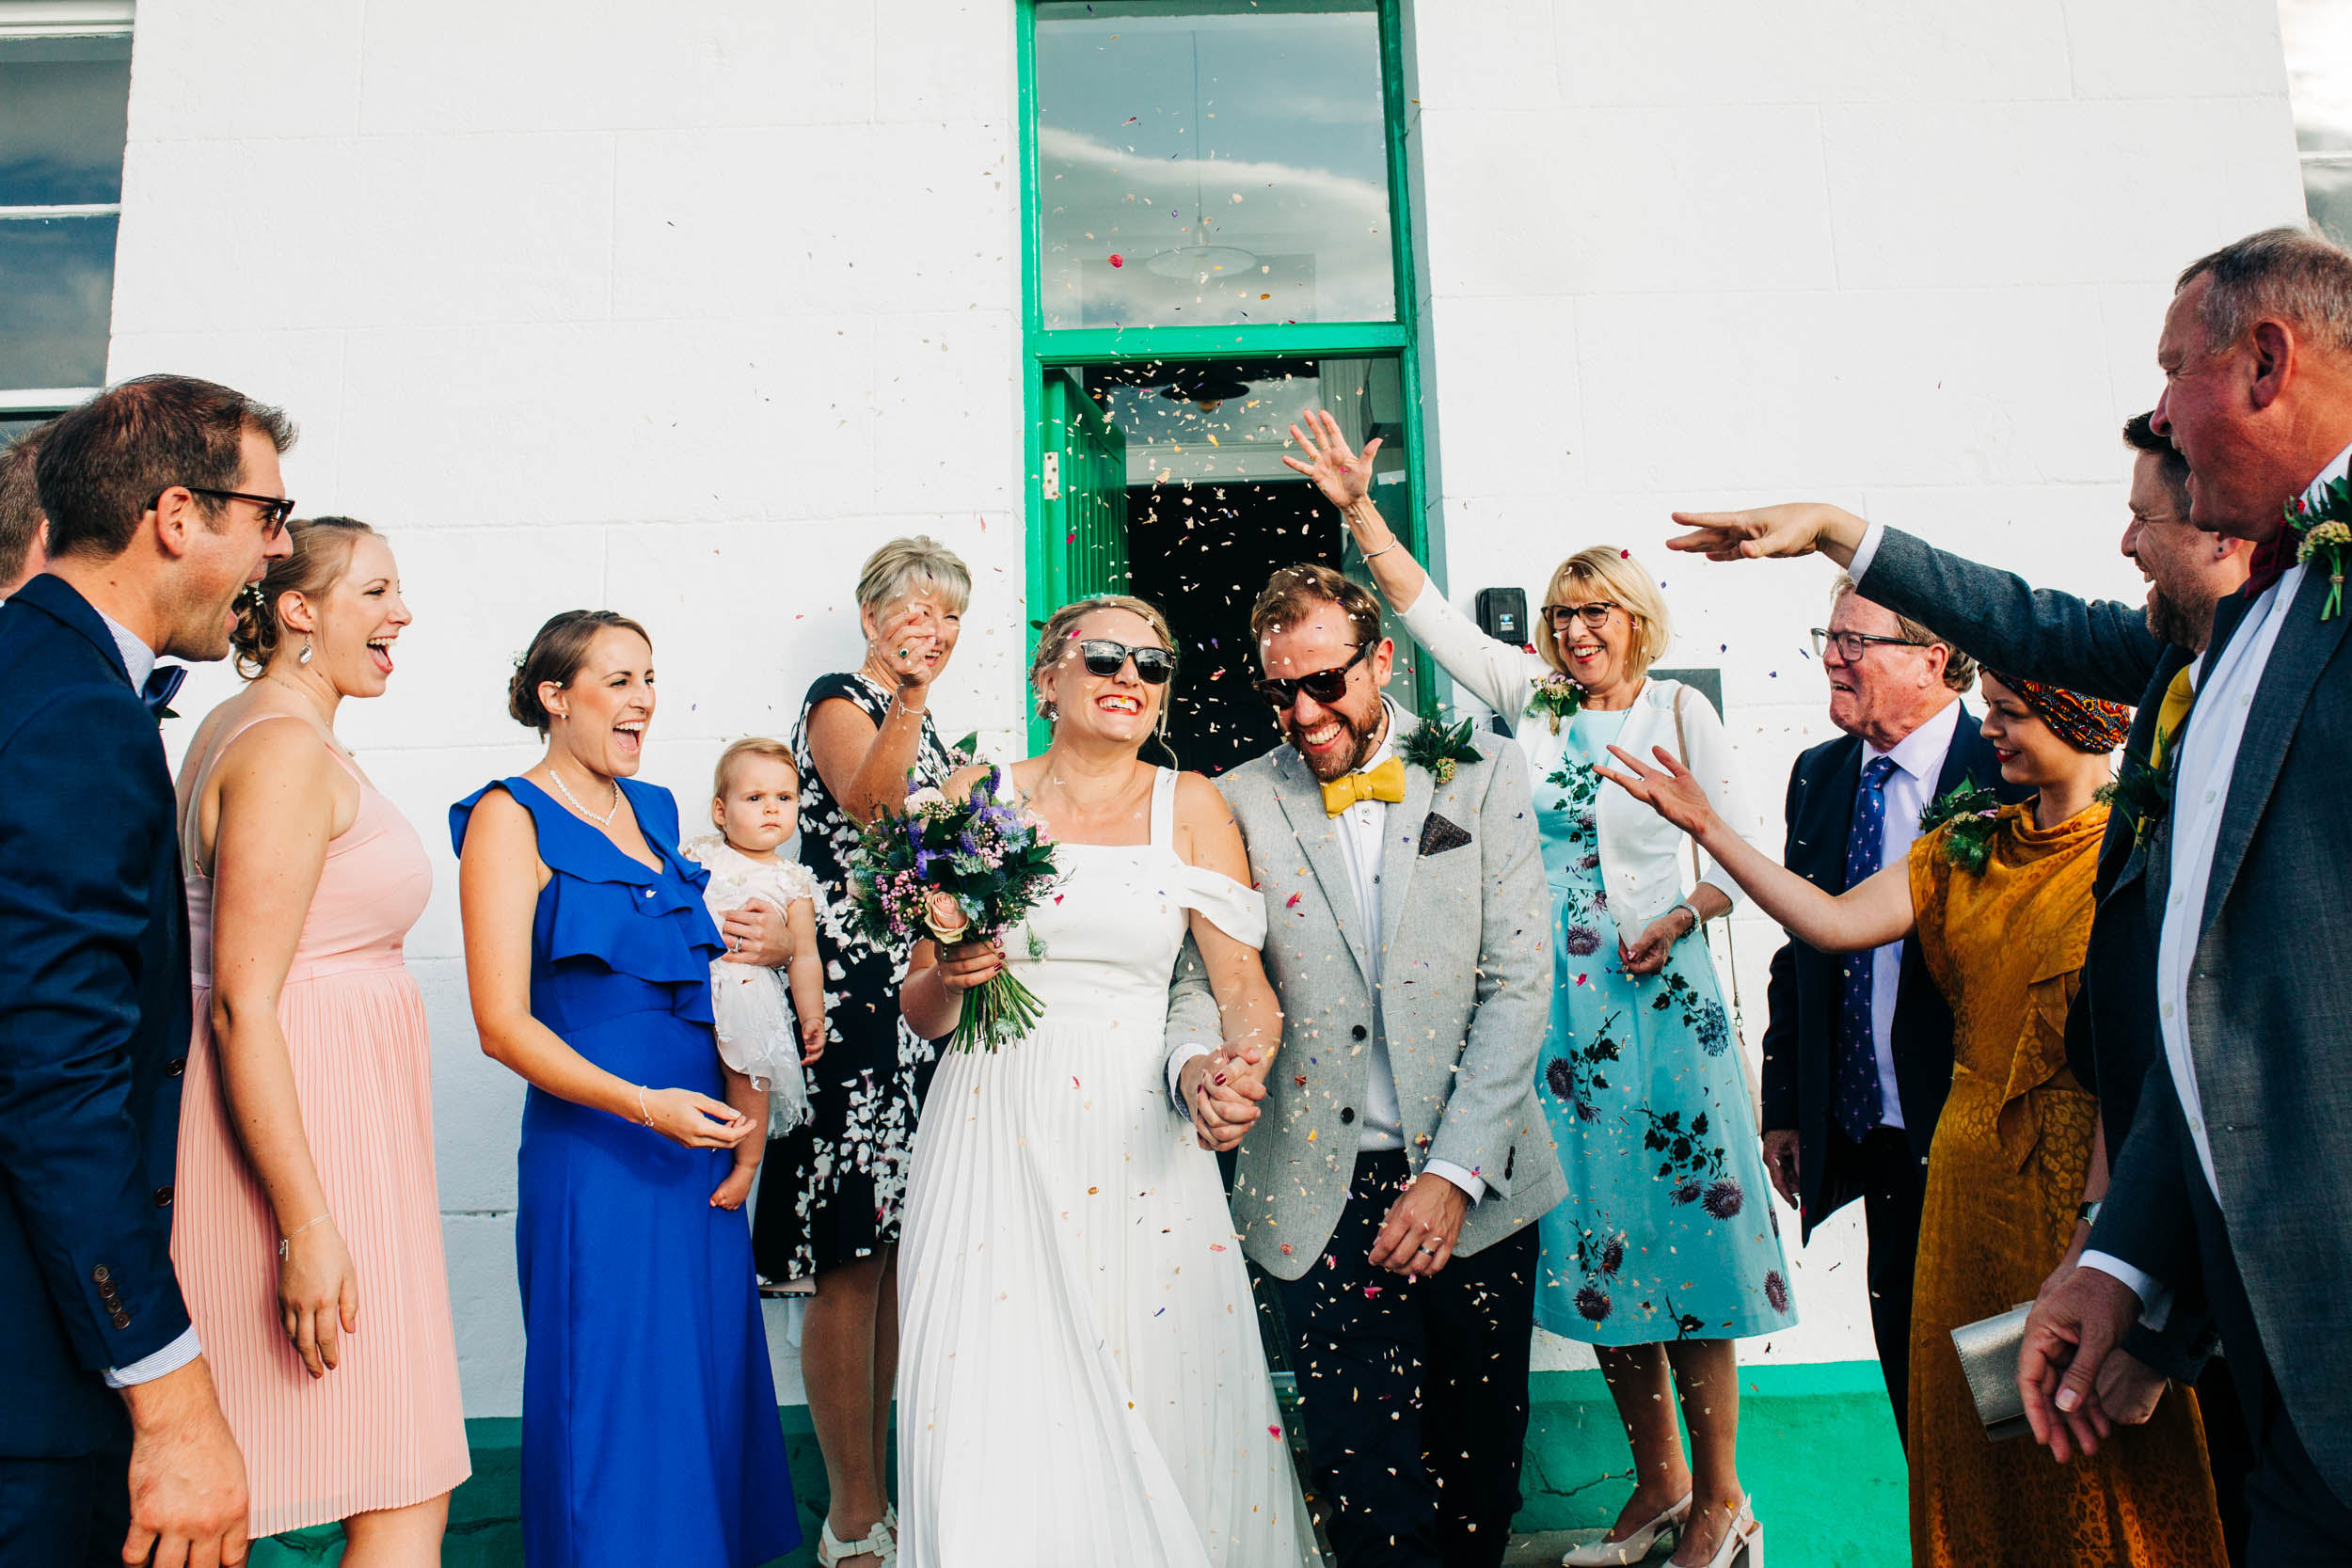 Alex_Sedgmond_Photography-MonkNashLighthouse-WeddingPhotography-Penny&Mike-233.jpg